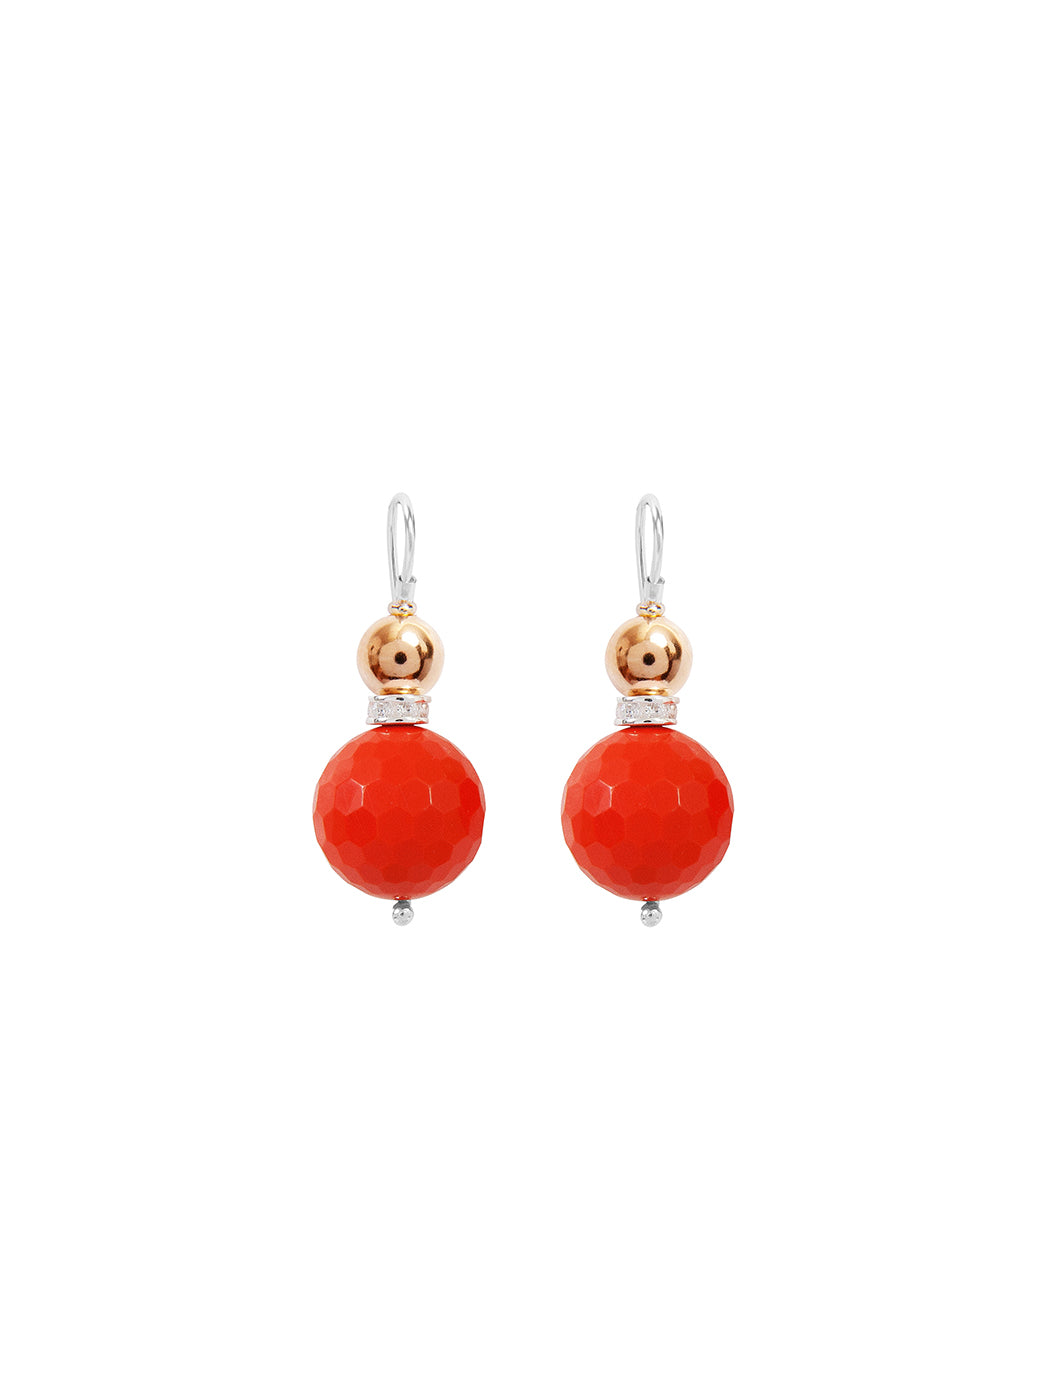 Fiorina Jewellery Double Ball Earrings Bright Coral